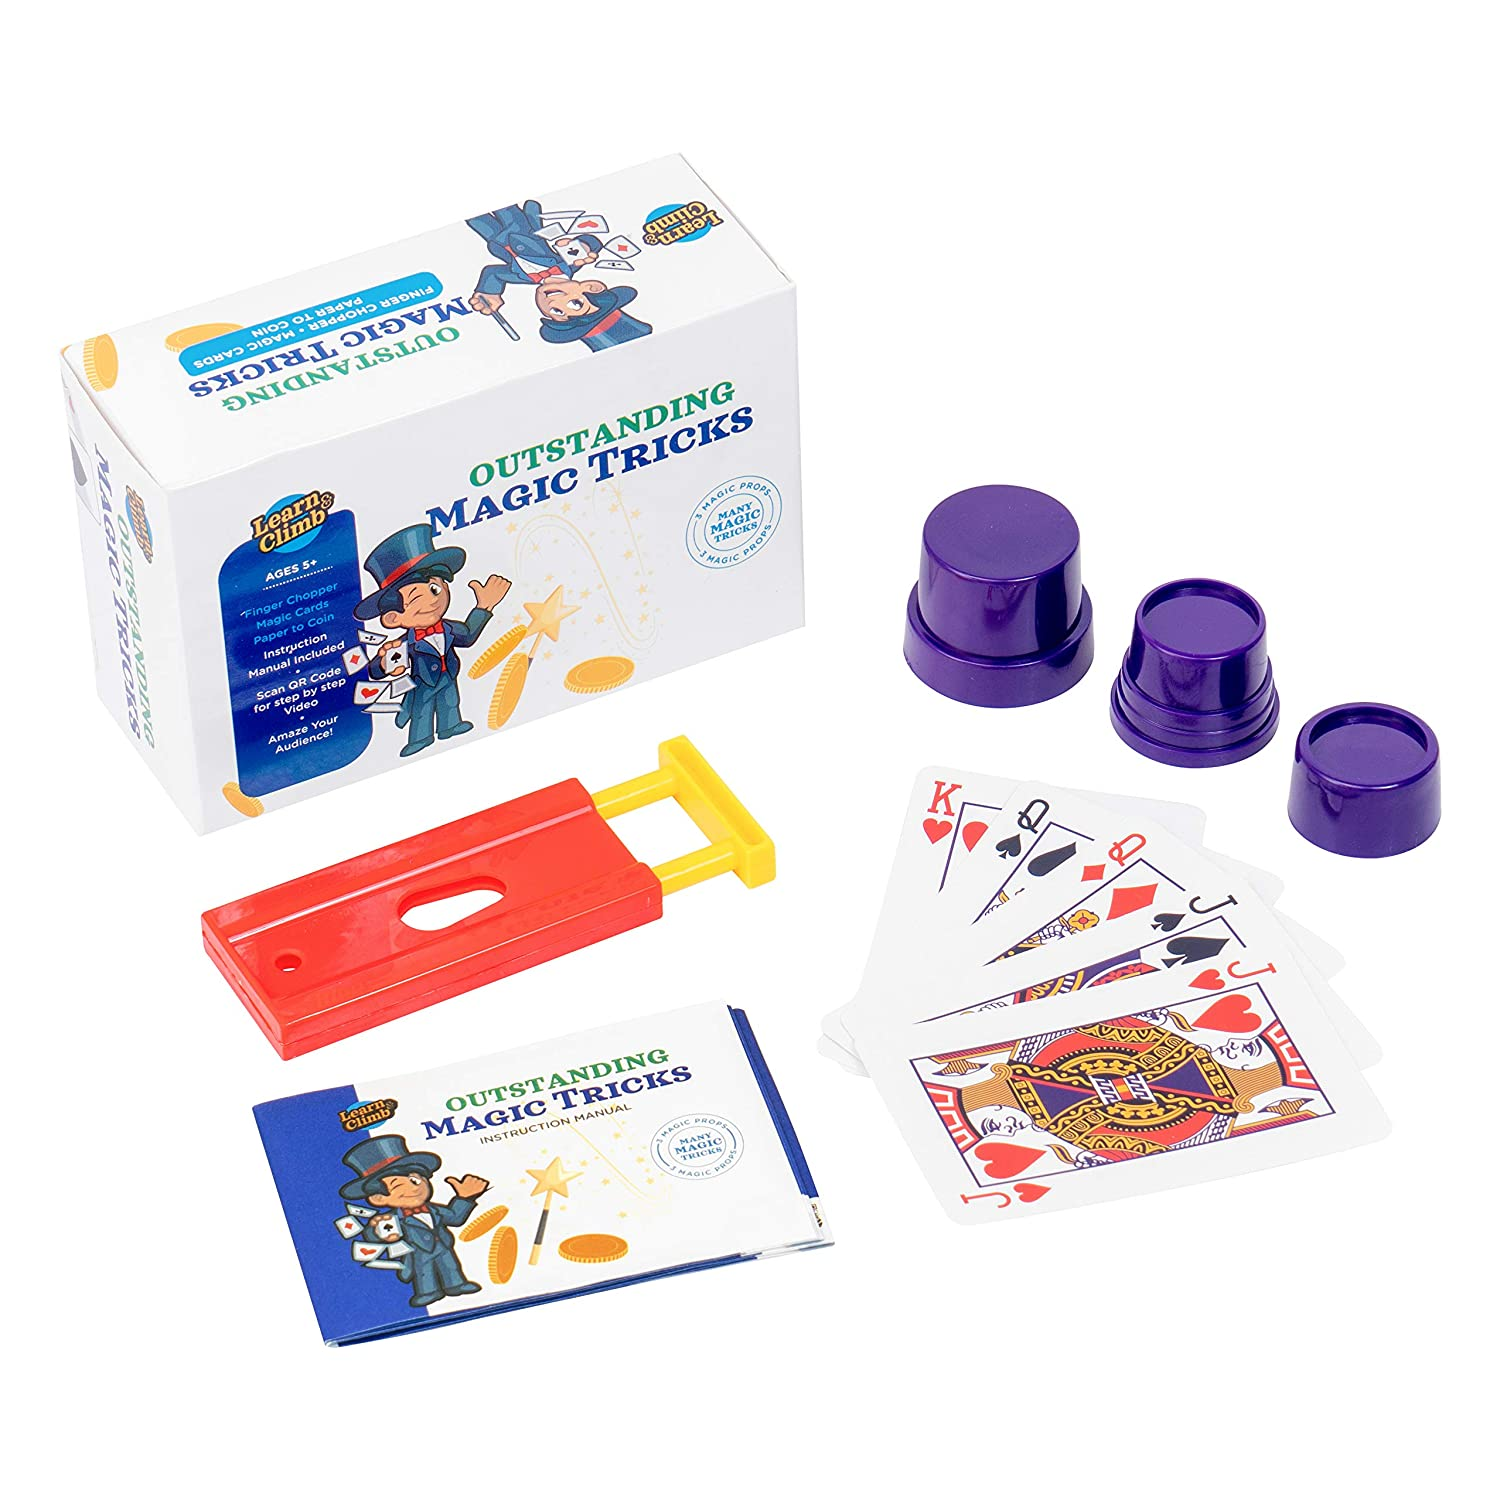 Set of Magical Cards and Easy to Follow Instructions Finger Chopper Learn /& Climb Outstanding Magic Tricks for Kids Ages 7,8,9,10 Set of 3 Unique Props kit Includes Paper to Coin Trick